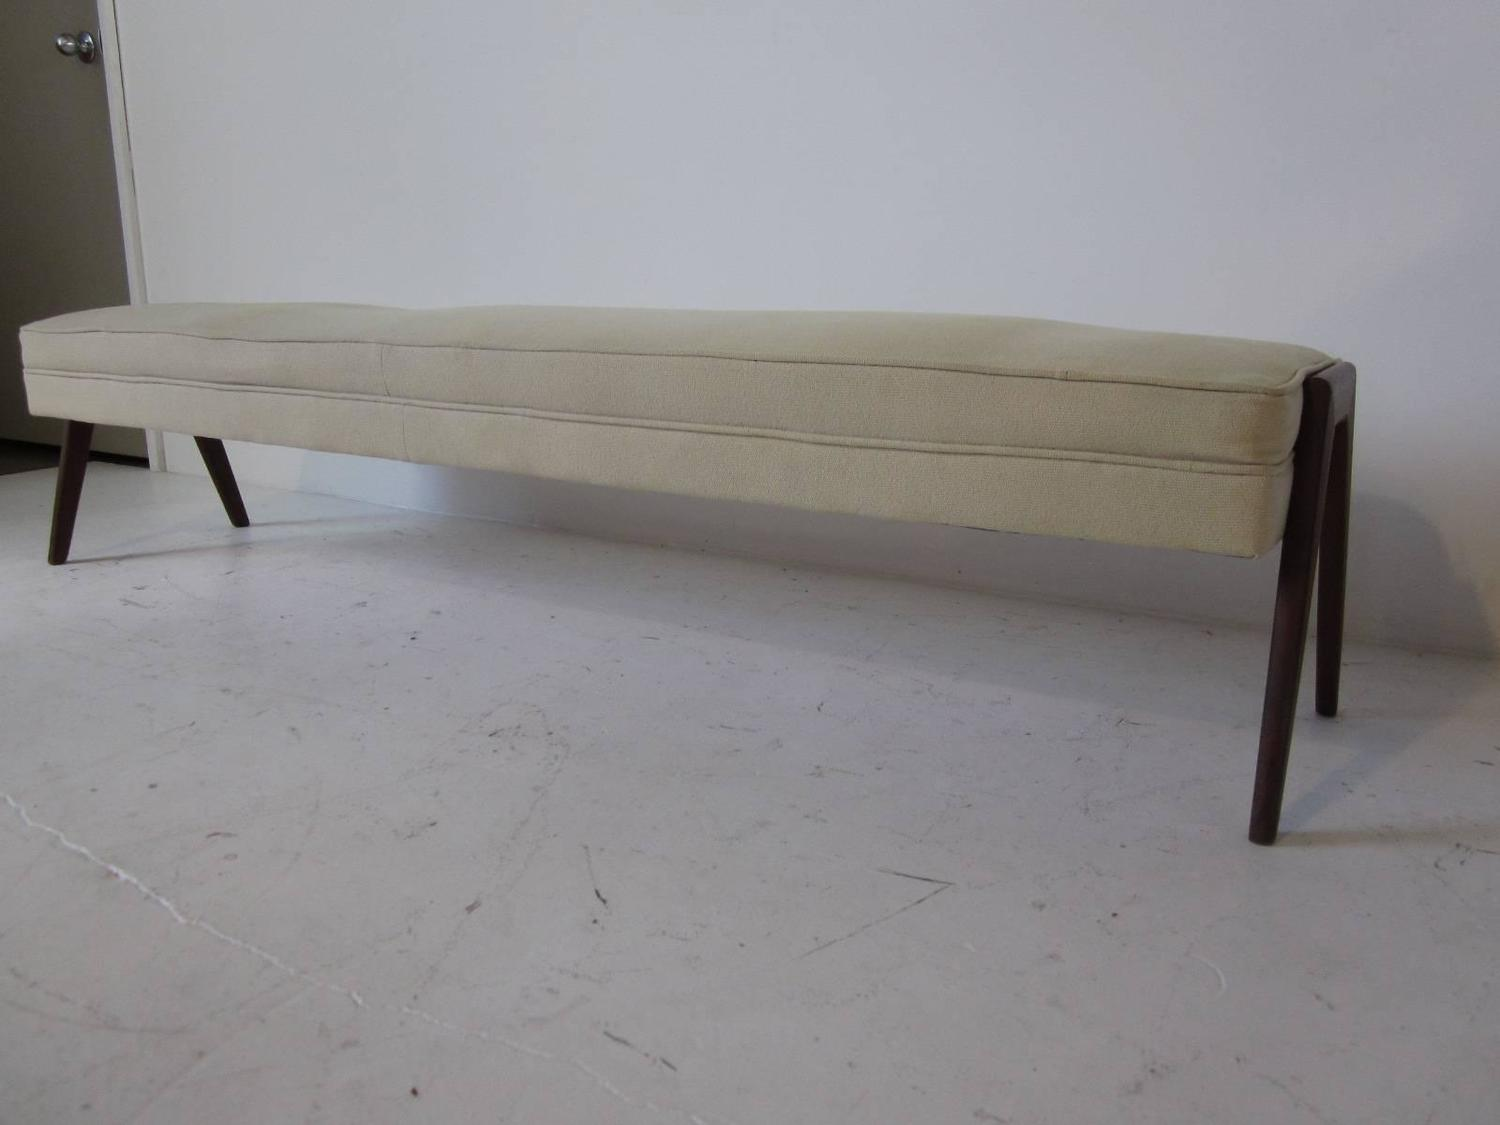 #635A4F Long Danish Upholstered Bench For Sale At 1stdibs with 1500x1125 px of Brand New Long Upholstered Bench 11251500 pic @ avoidforclosure.info